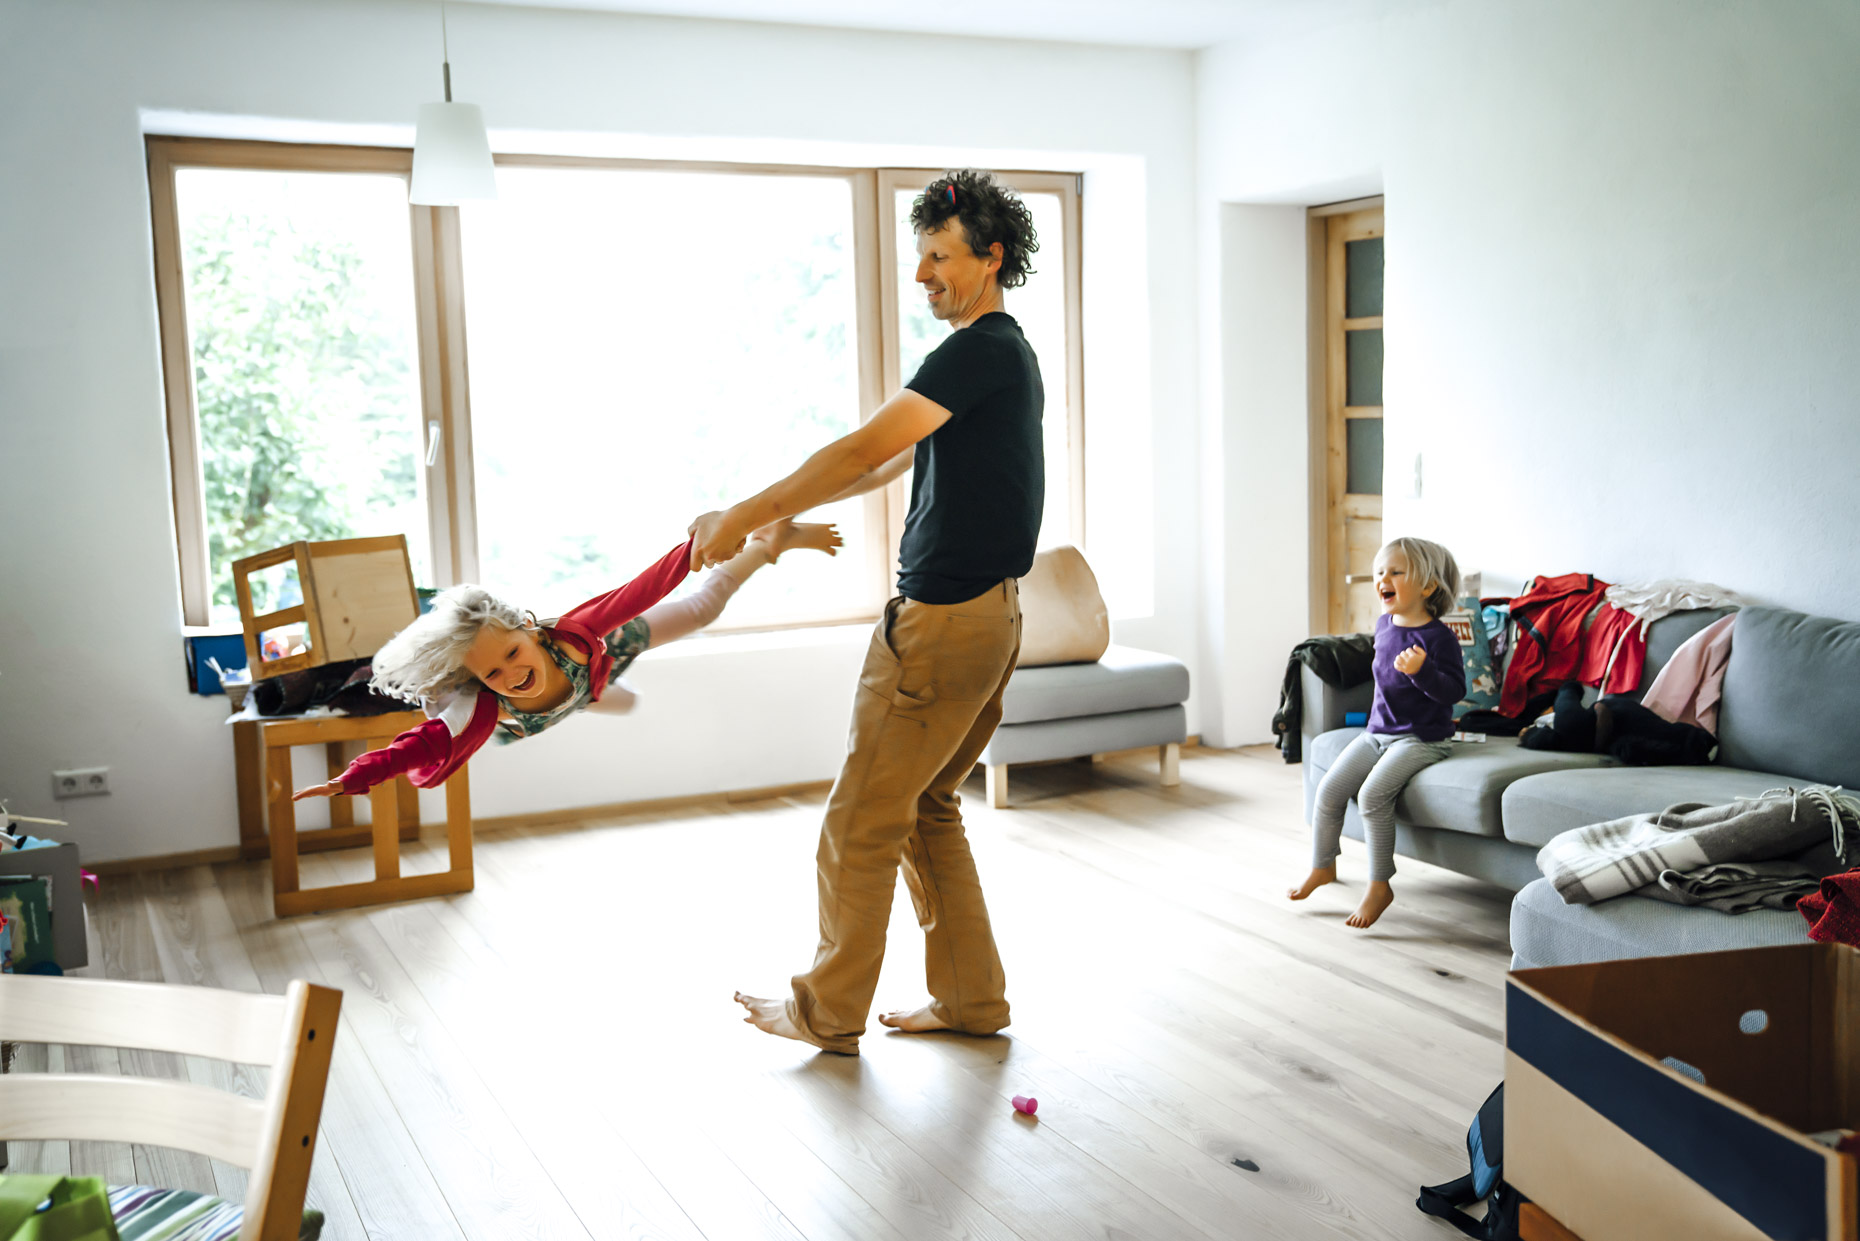 Man twirling happy daughter around messy living room